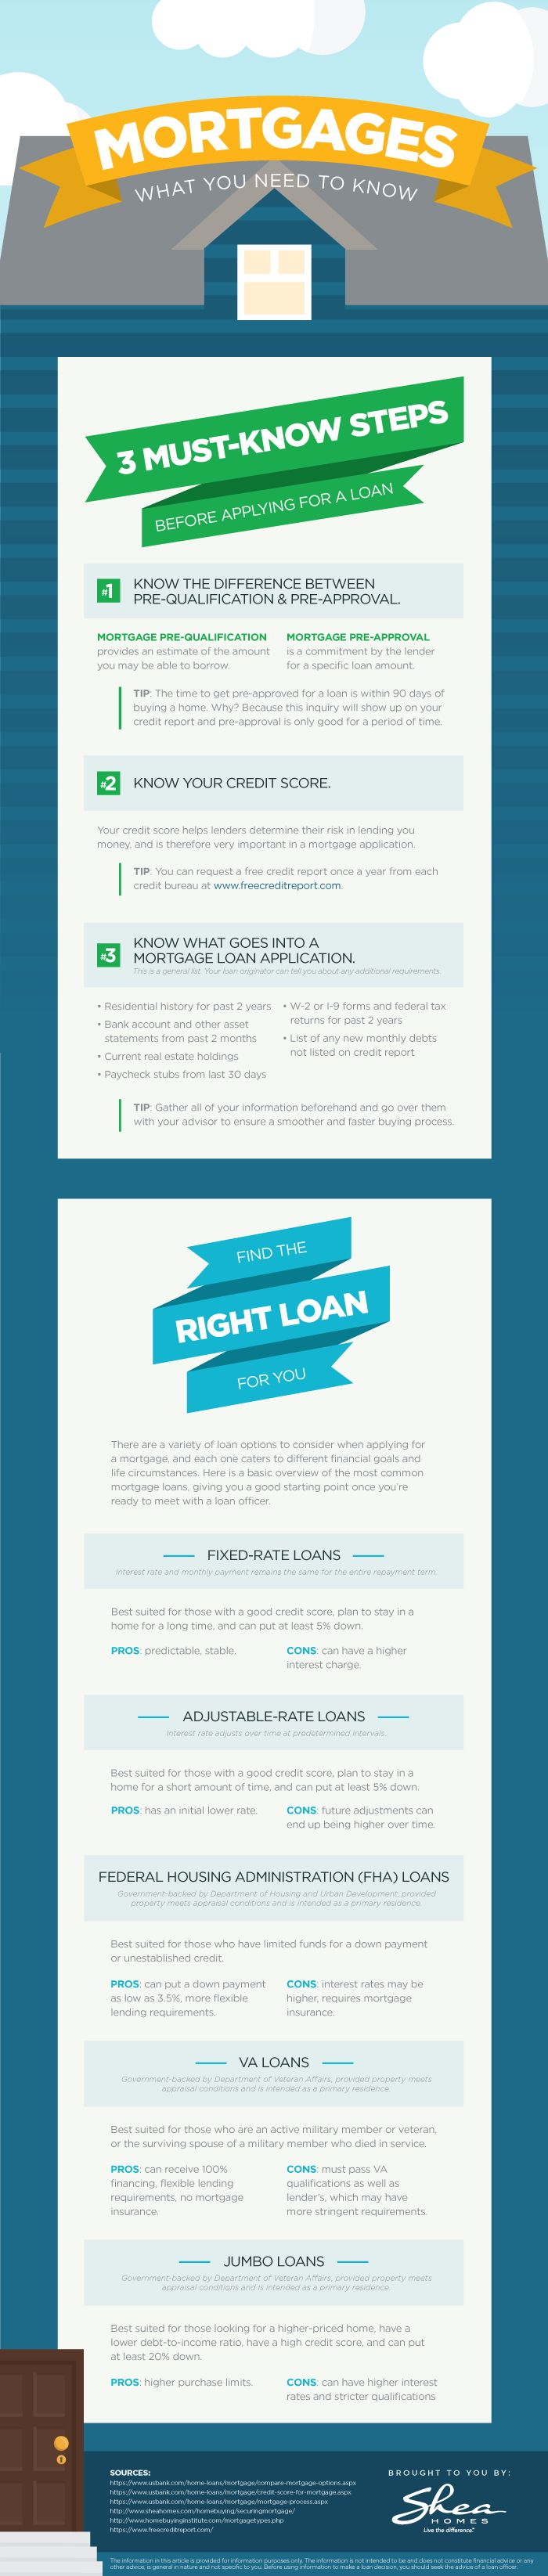 25 best va house loan ideas on pinterest home buying process looking for your dream home learn the basics of some of the most common mortgages